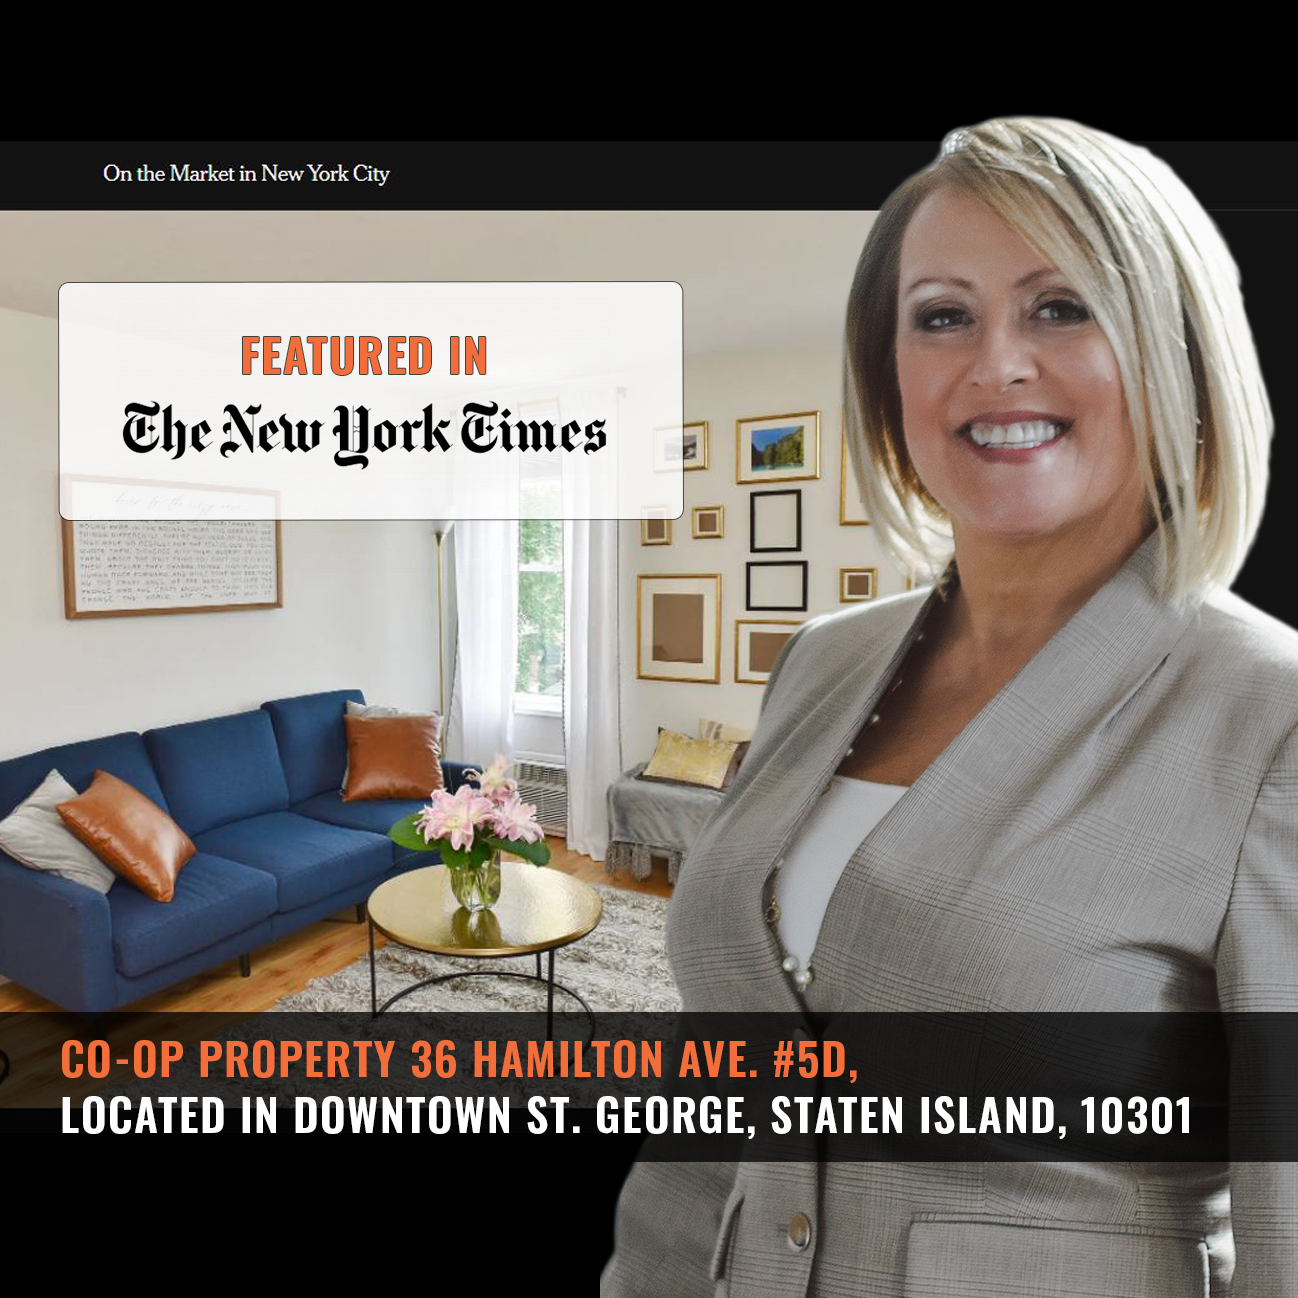 Screenshot of this property from NYT Website